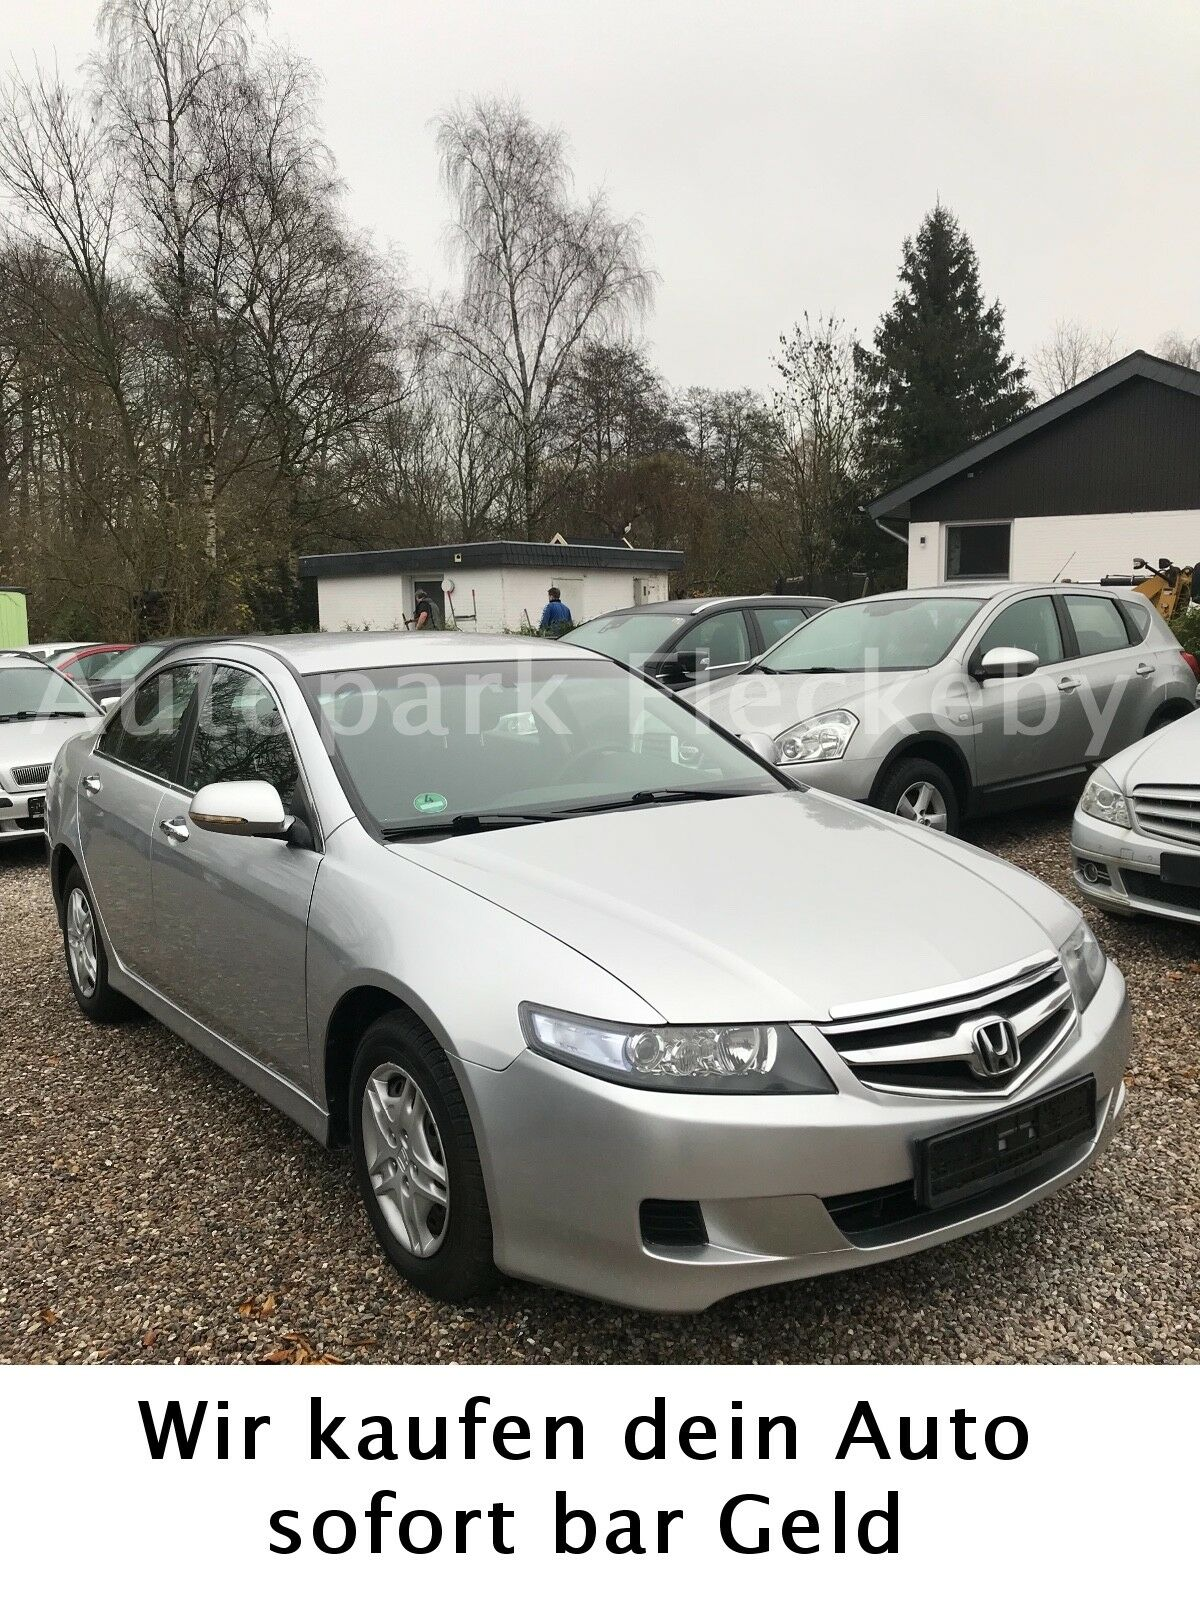 HONDA Accord 2.0 i **TOP**74tkm**TÜV NEU**Garantie**